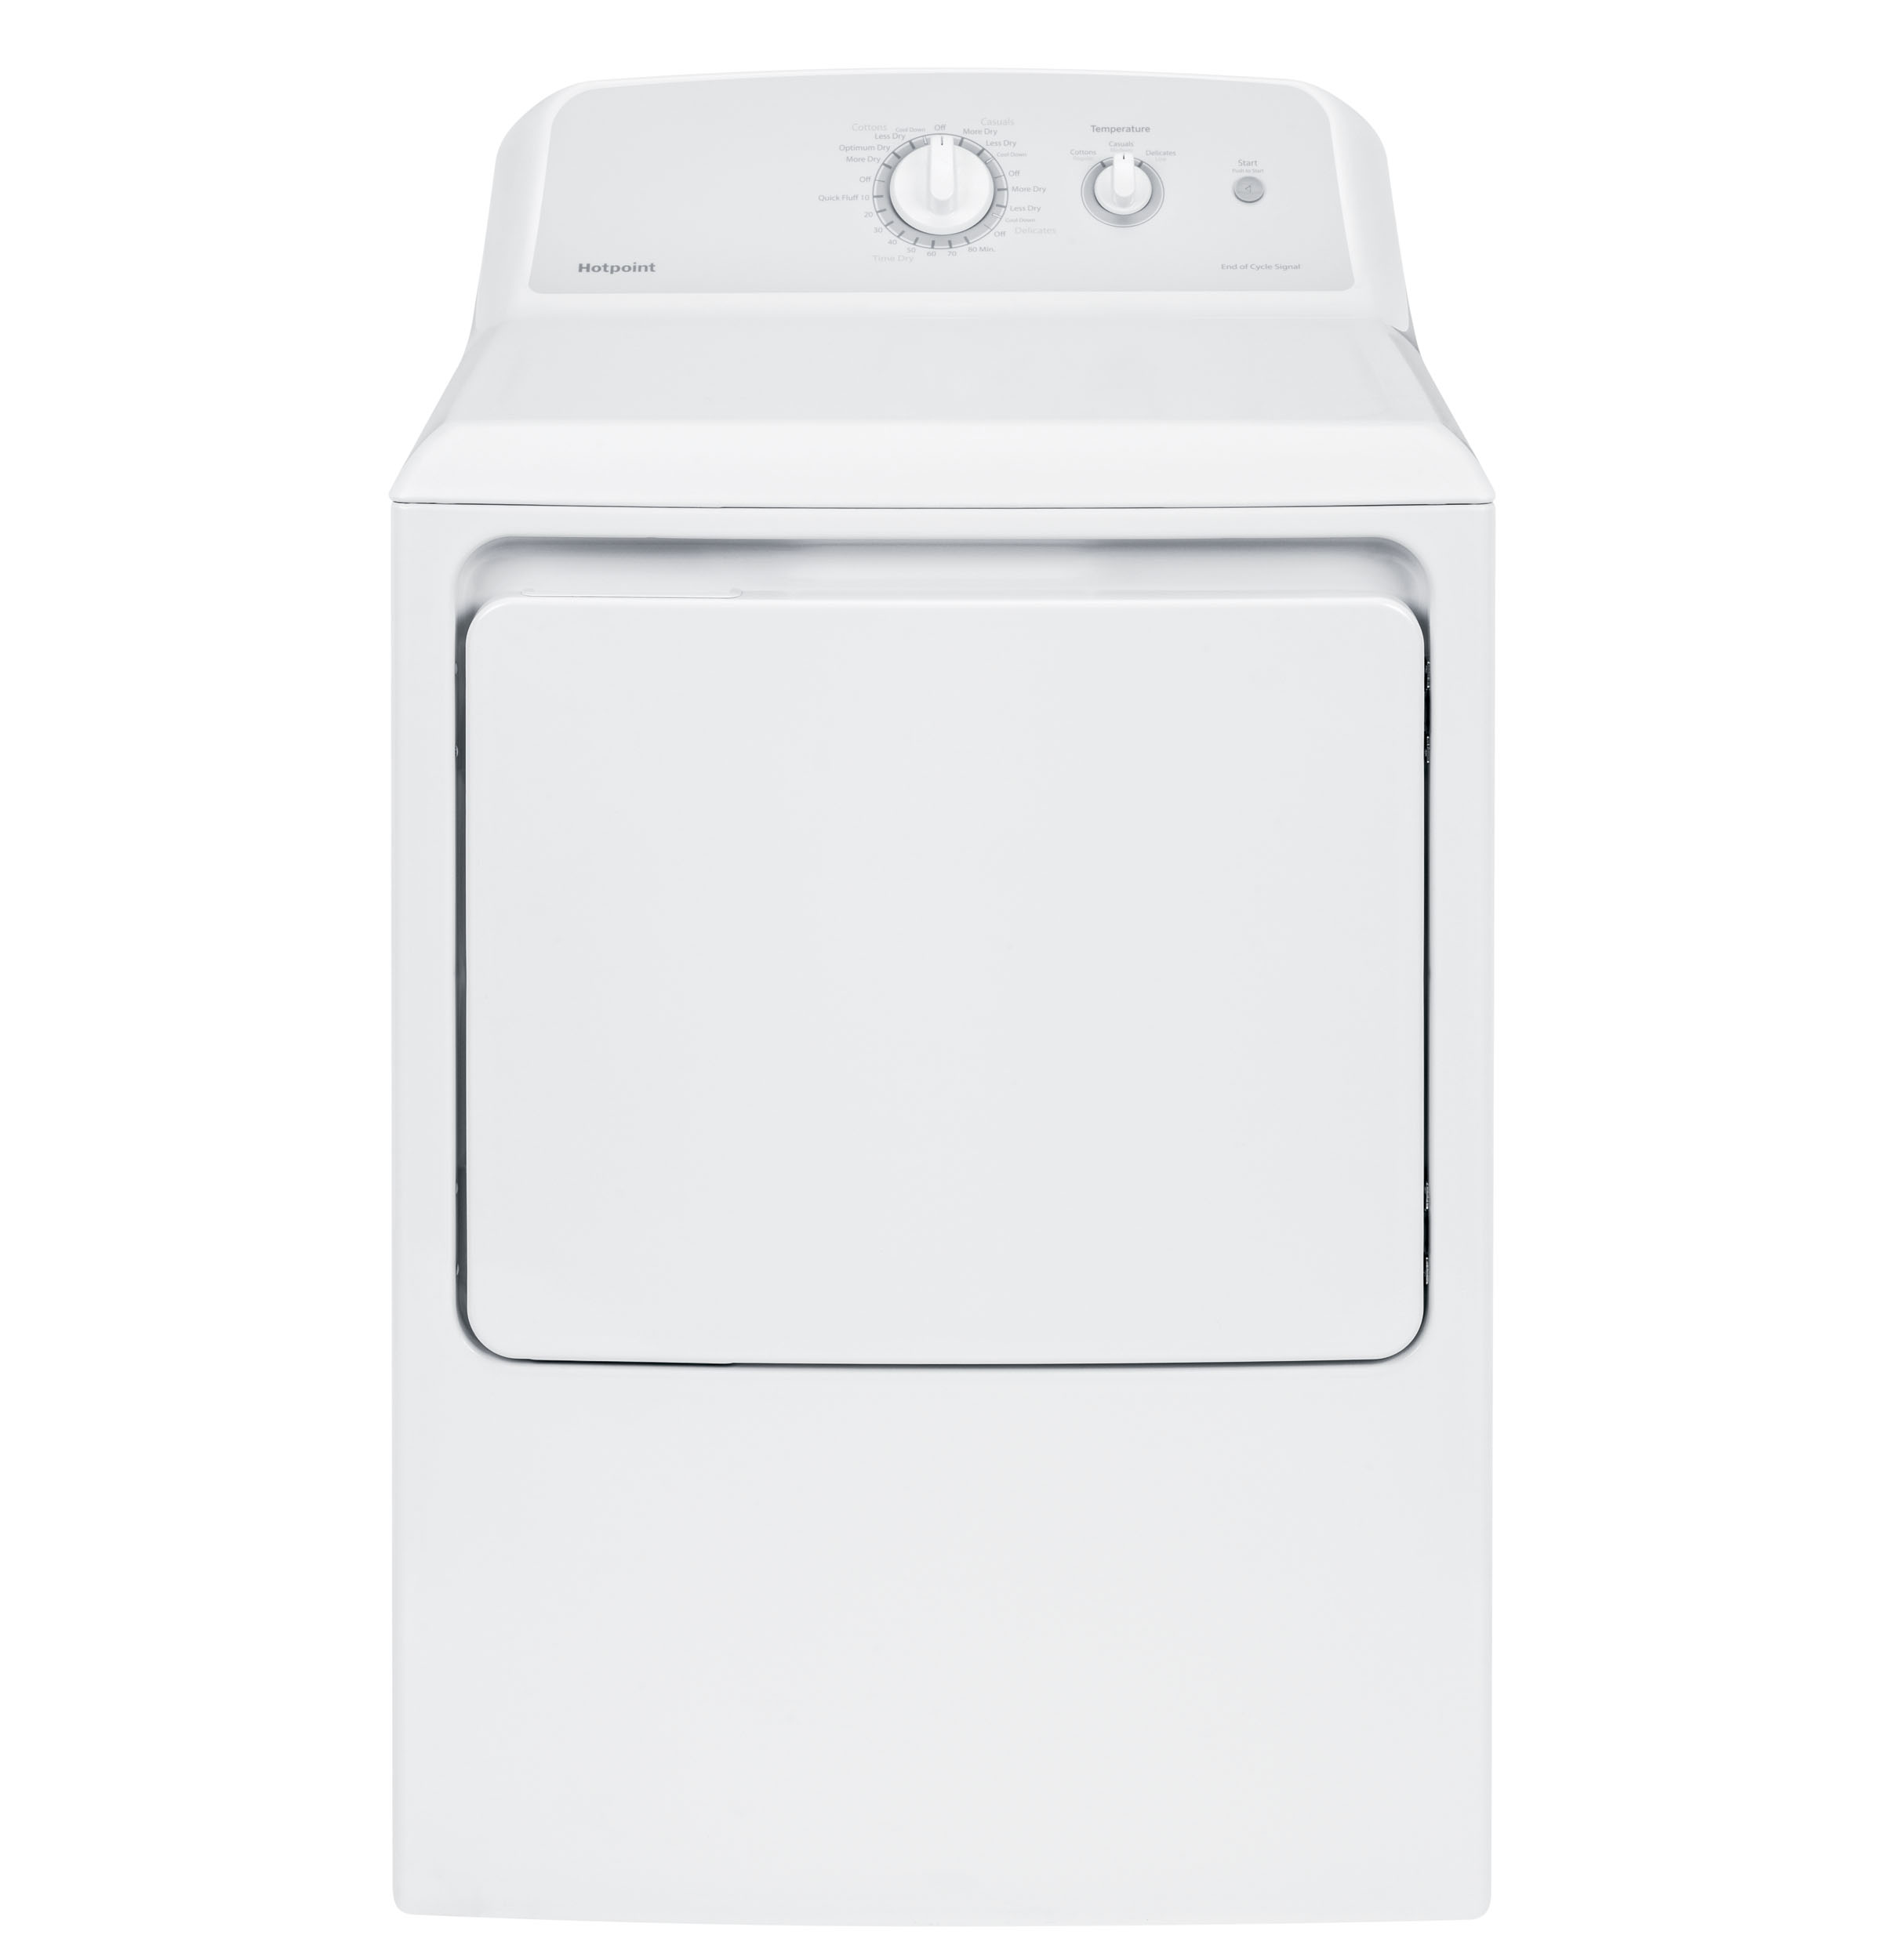 Hotpoint® 6.2 cu. ft. Capacity aluminized alloy Gas Dryer